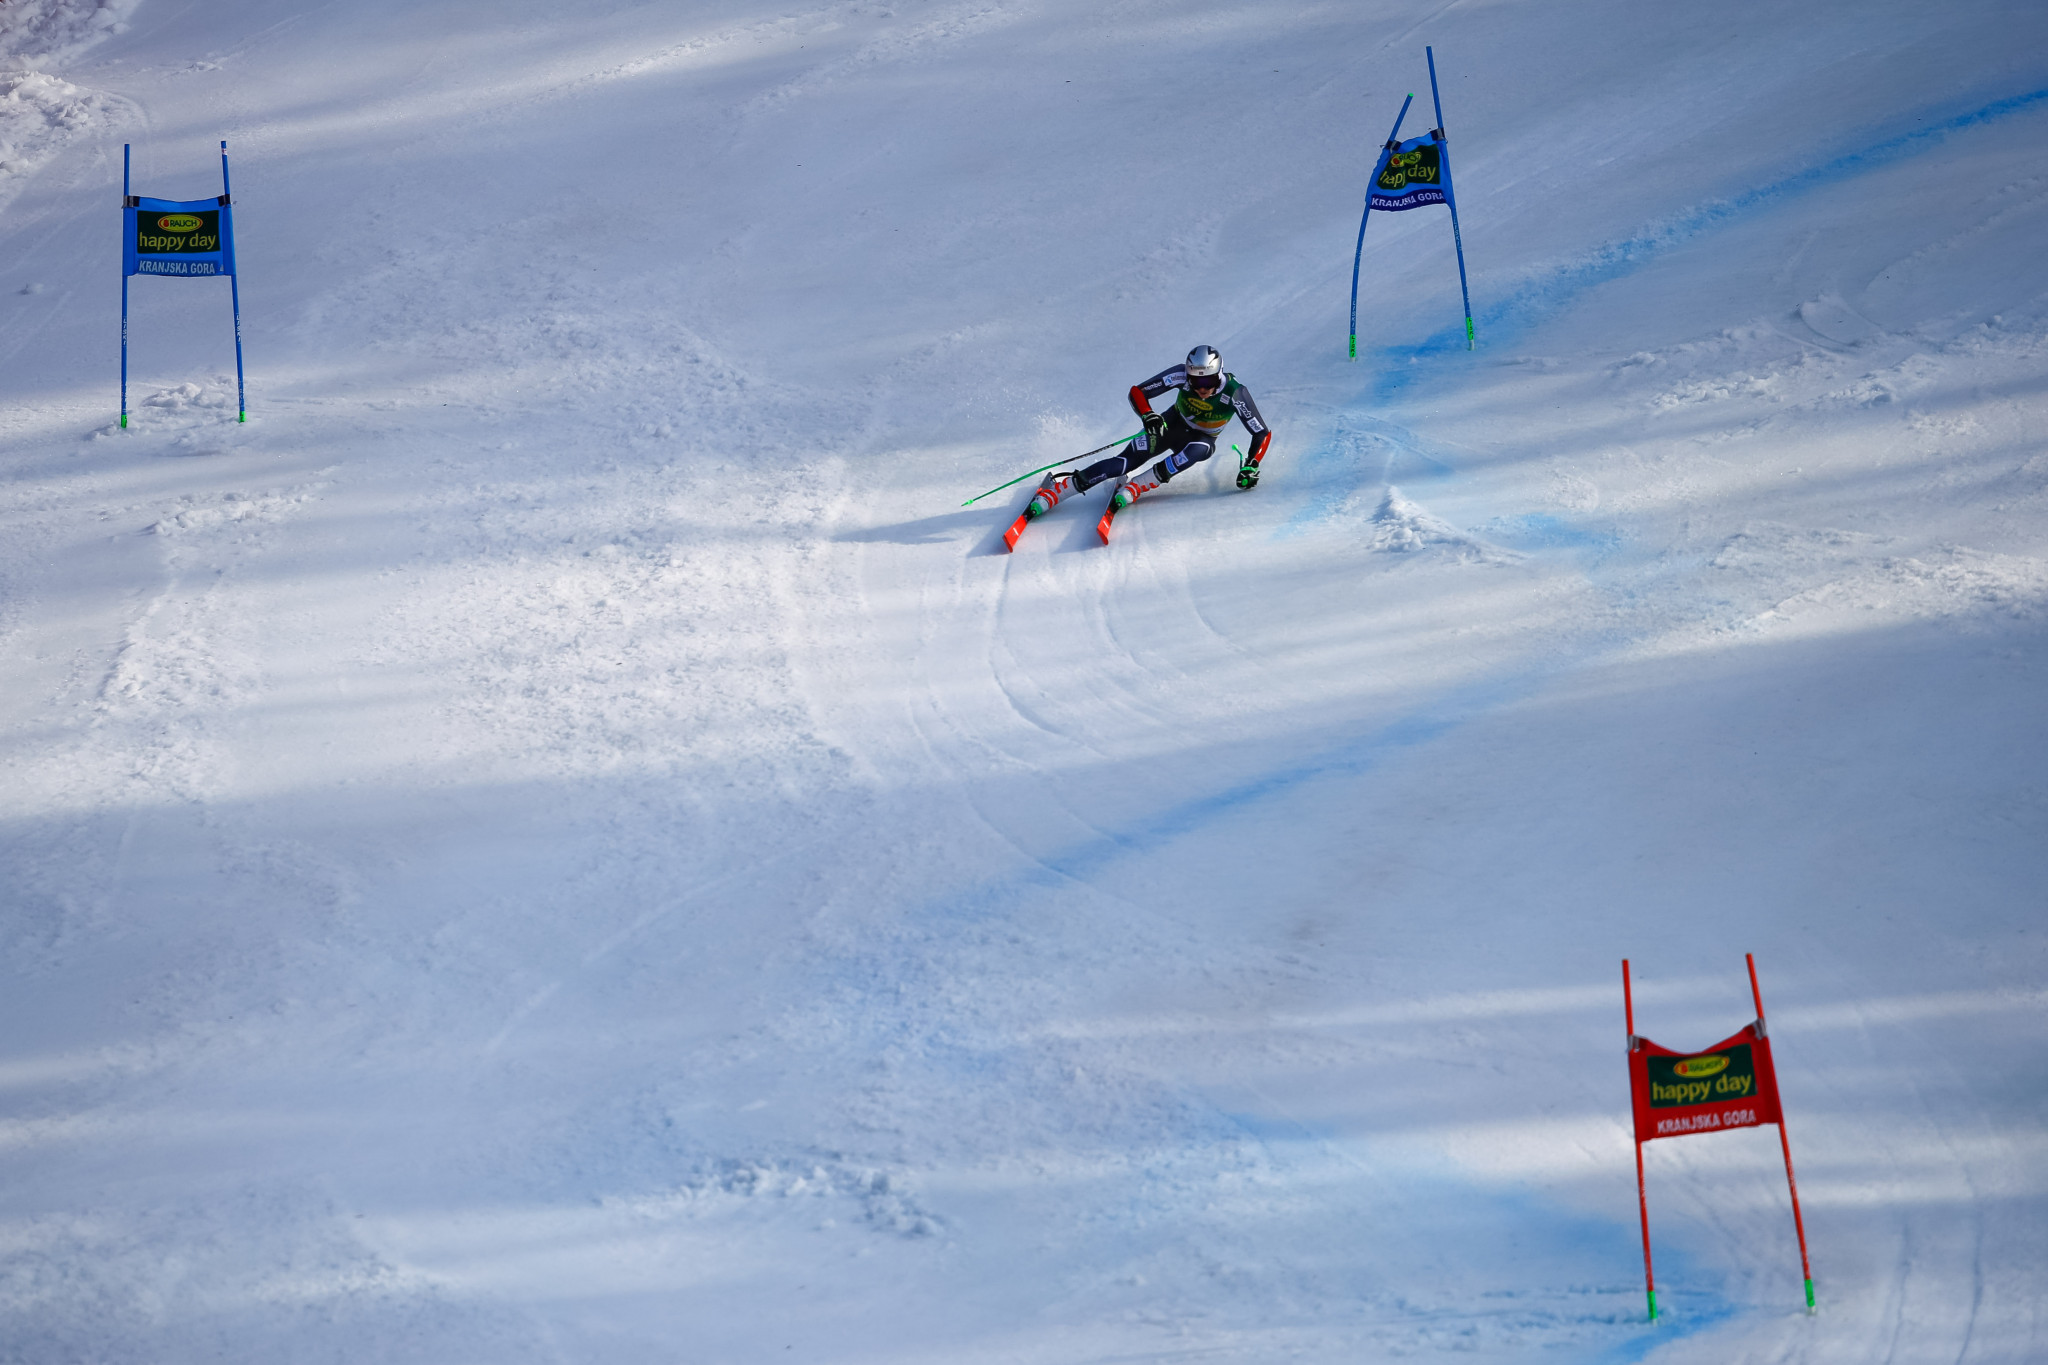 Newly-crowned world champion Henrik Kristoffersen of Norway maintained his recent dominance of the men's giant slalom event with his second consecutive victory in the discipline ©Getty Images